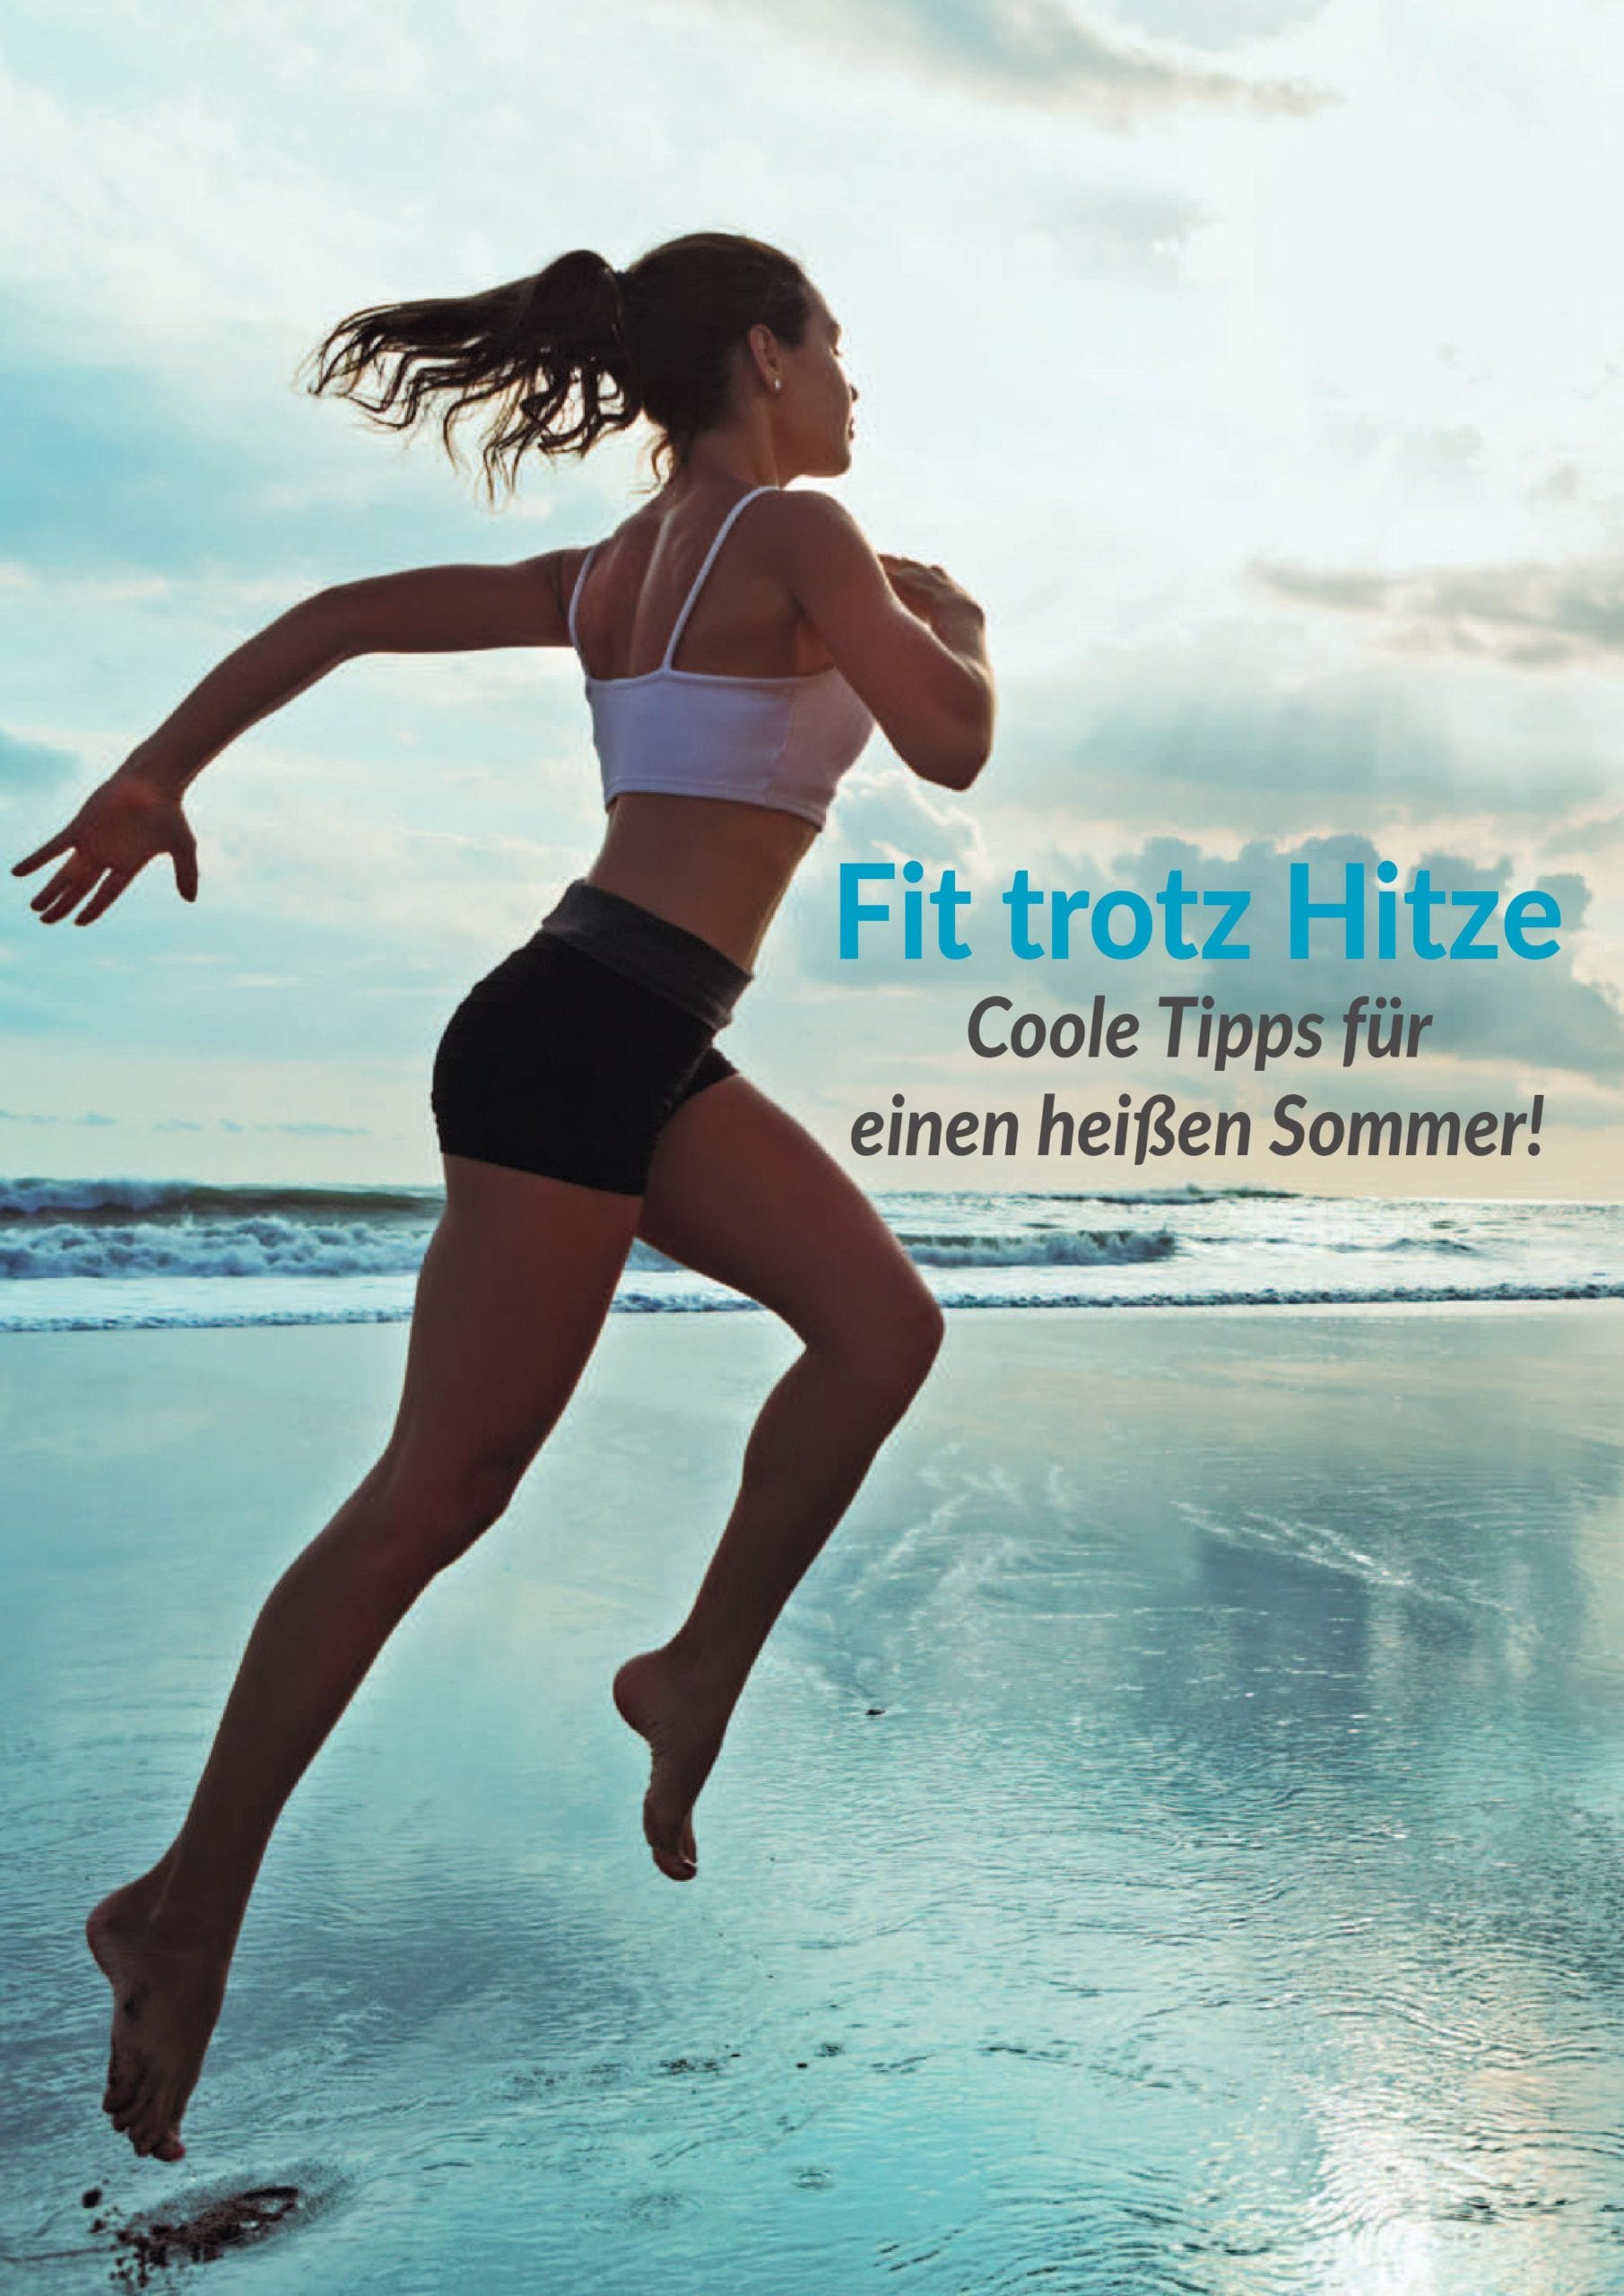 Sportmental Magazin: Fit trotz Hitze - Fitness e!Motion